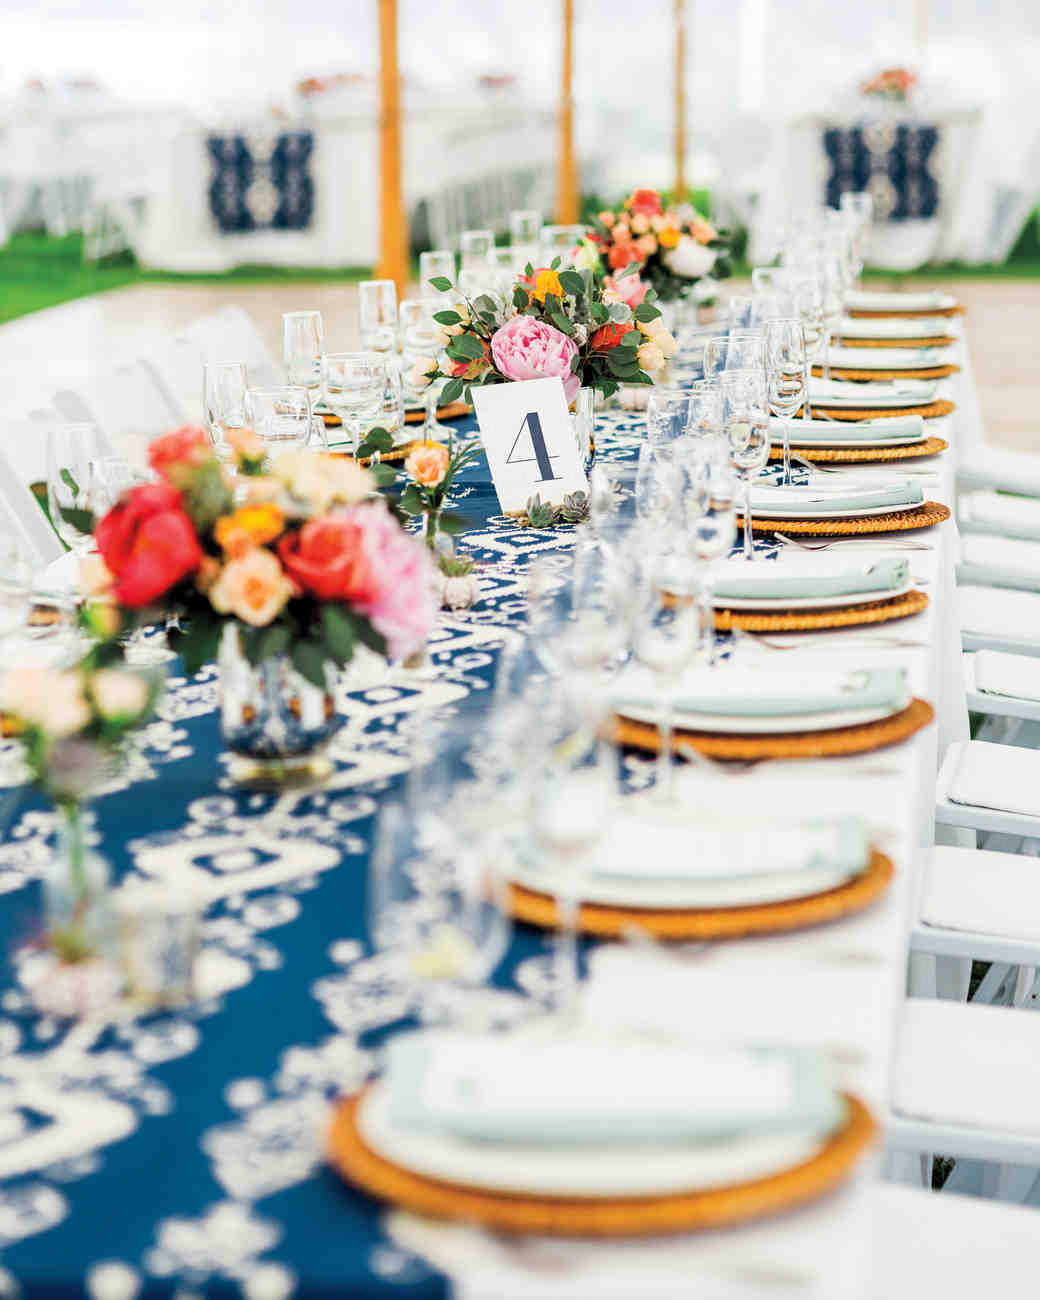 42 Stunning Banquet Tables for Your Reception | Martha Stewart Weddings